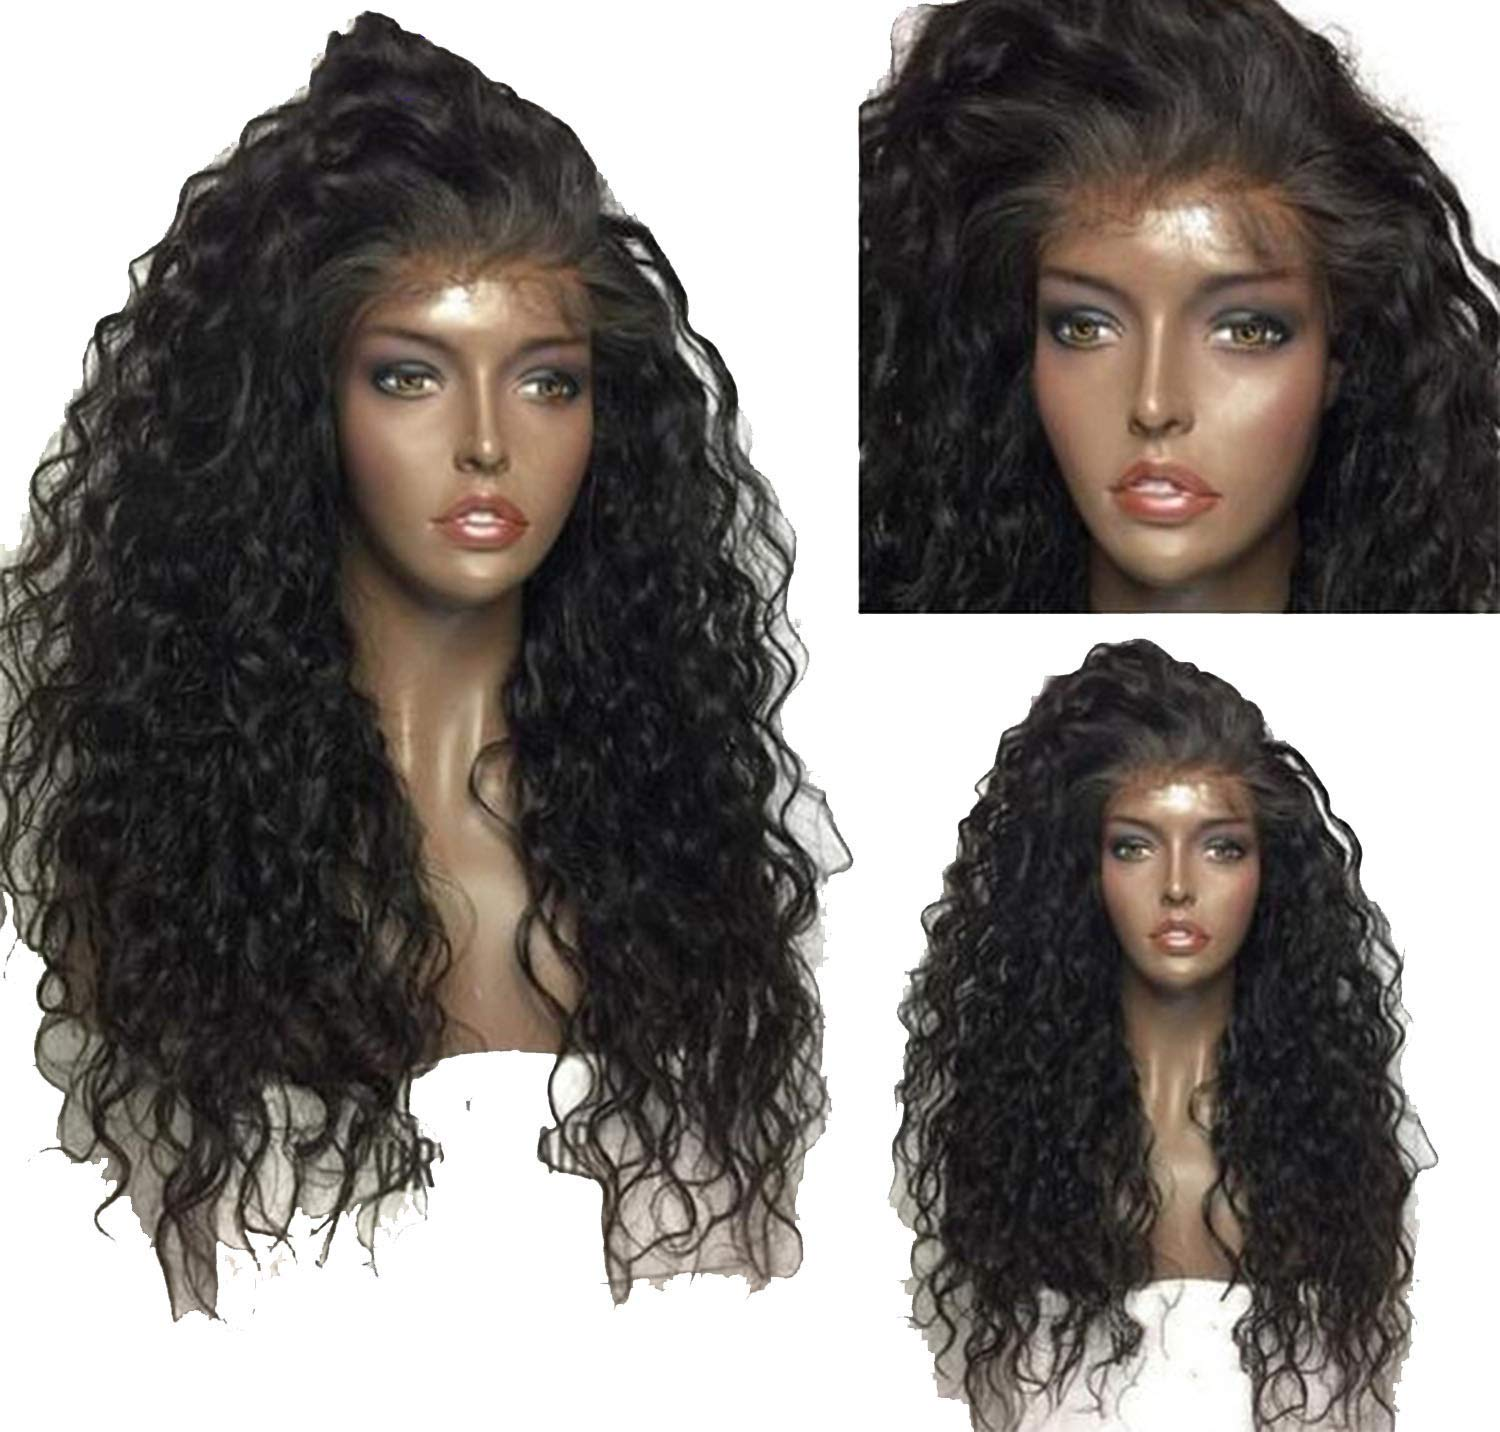 Glueless Pre Plucked Lace front Human Hair Wigs Curly Wig Human Hair With Baby Hair Tshirt,Natural Color Tshirt,8inches